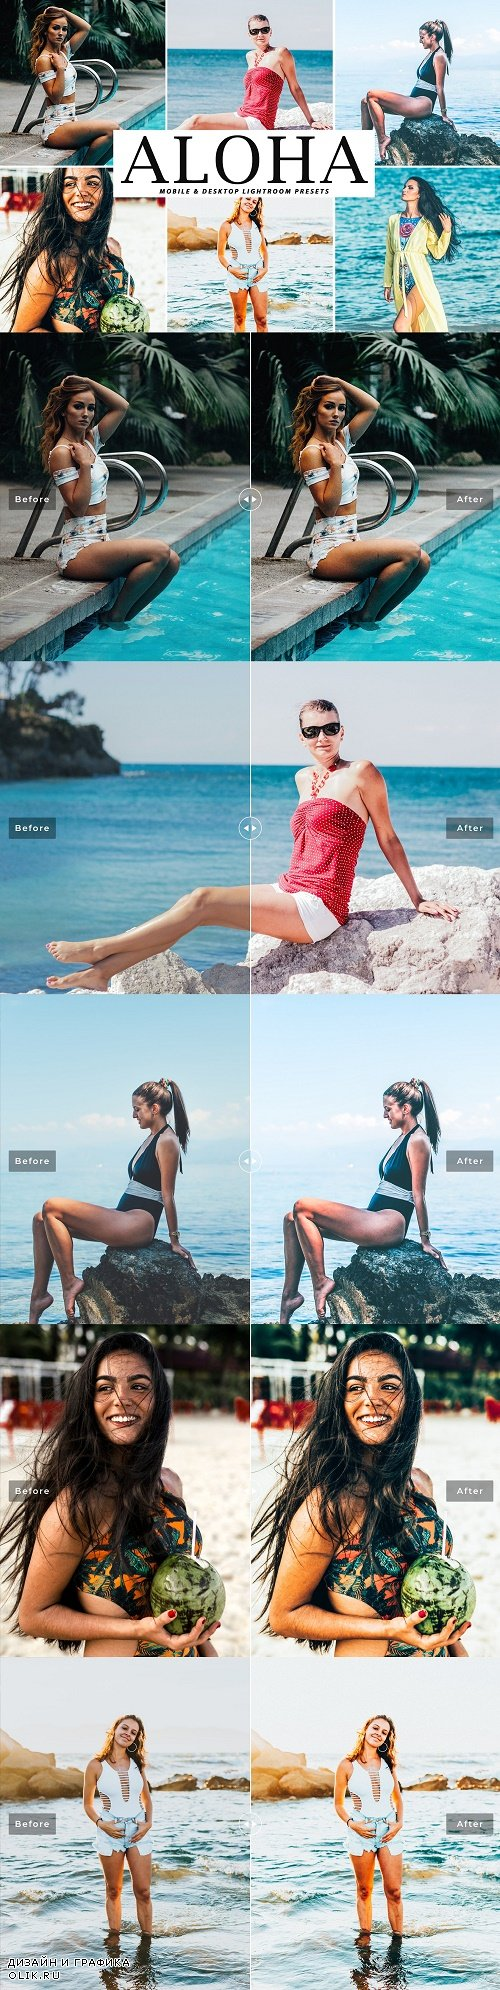 Aloha Lightroom Presets Pack - 4051018